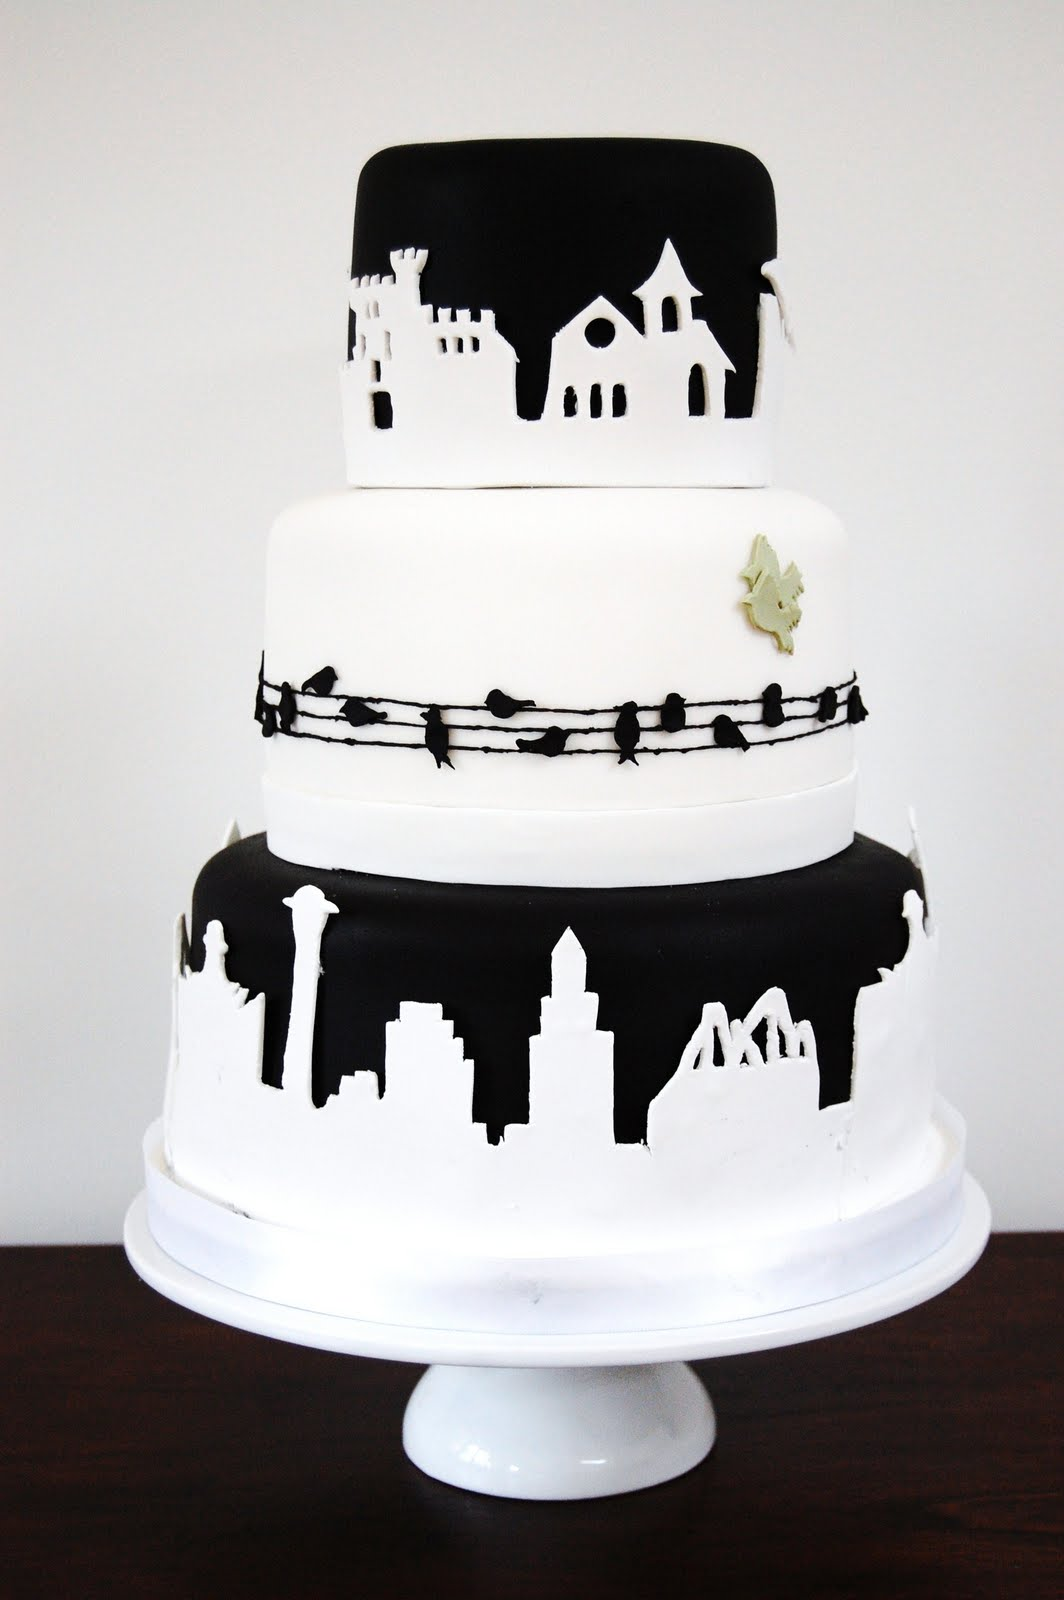 iced Kitt and Marco s Silhouette Wedding Cake 18th June